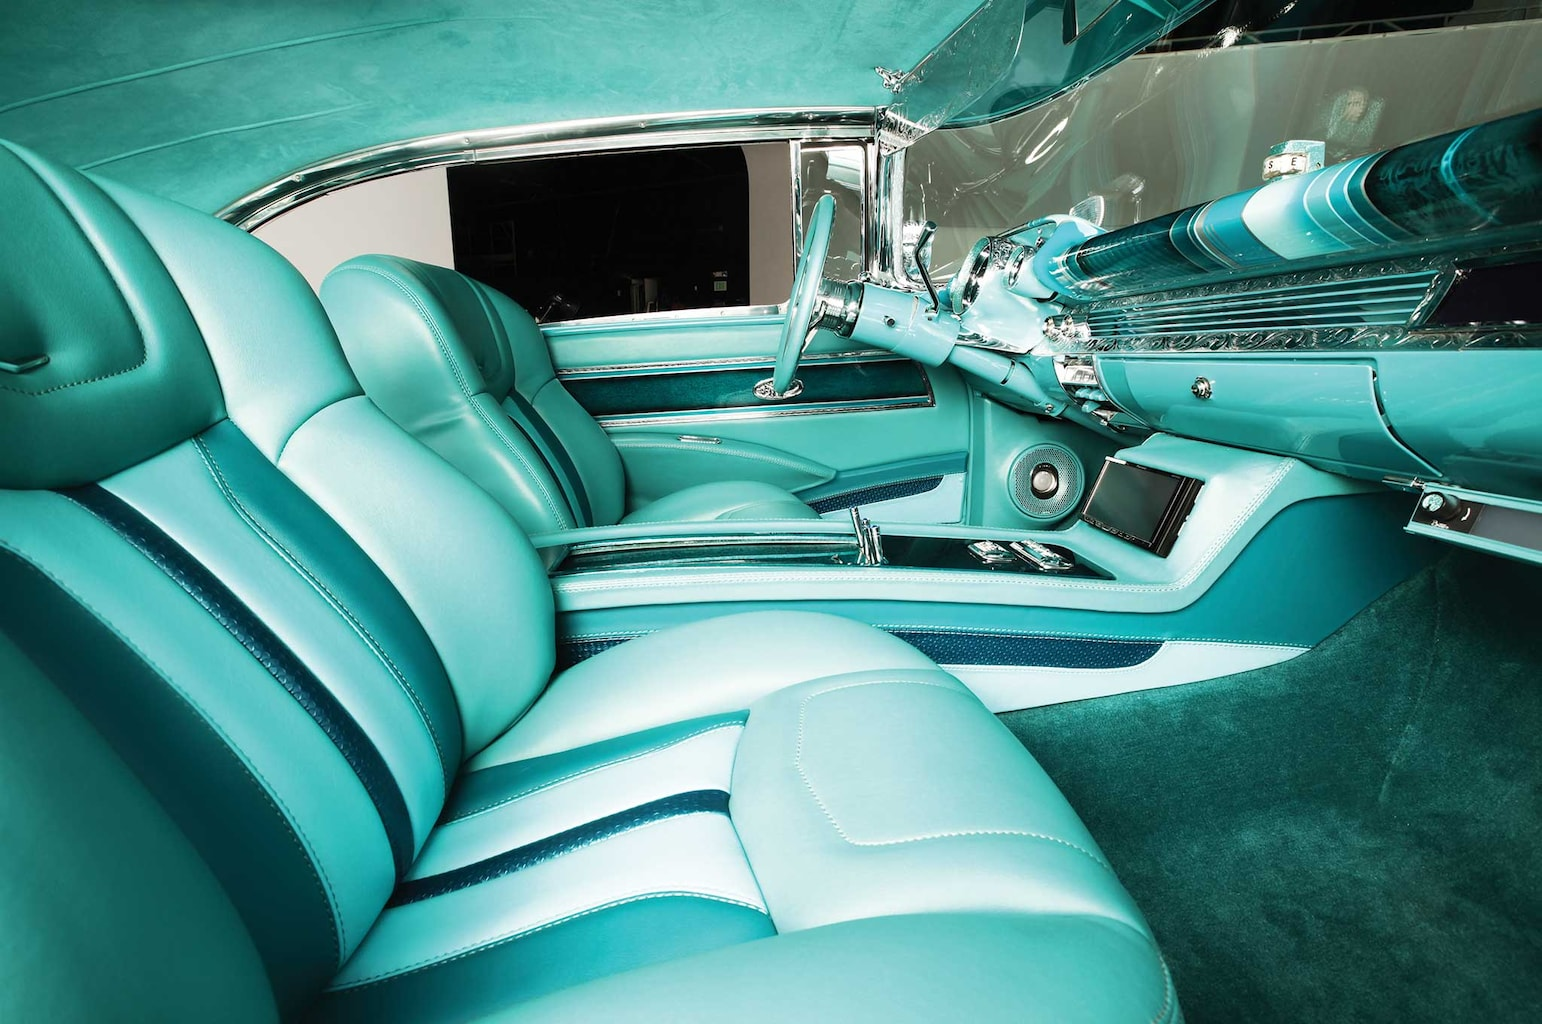 1957 chevrolet bel air lexus seats 005